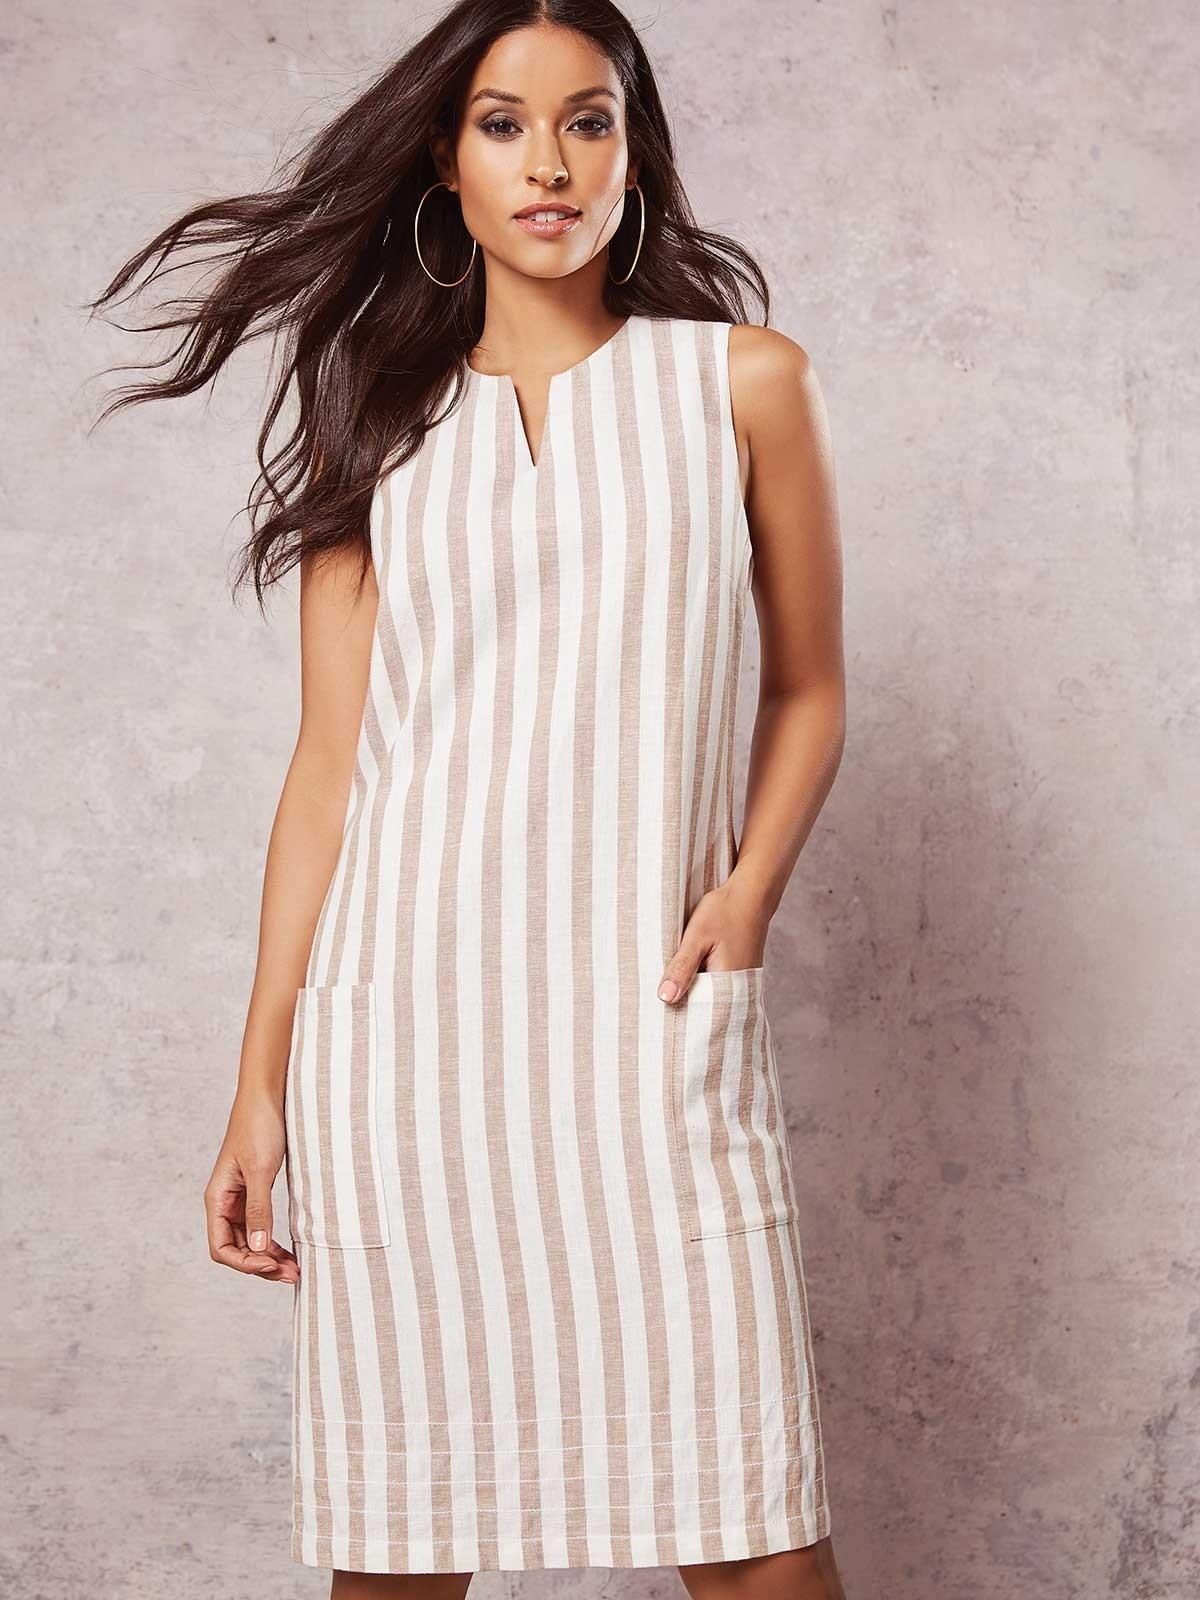 This striped linen shift dress was one of our top-rated products in April- for good reason!